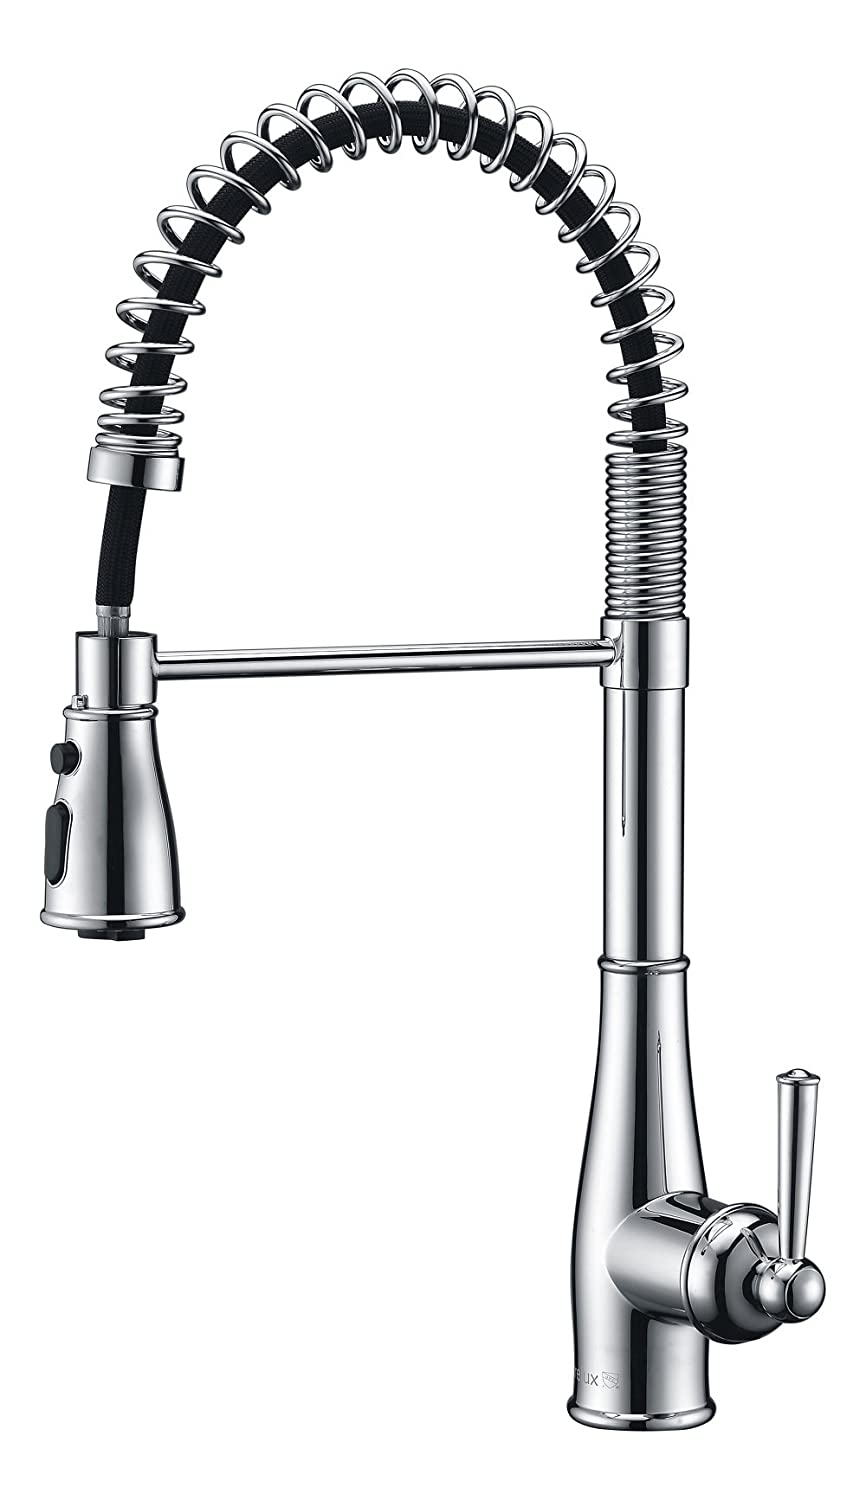 Purelux Commercial Style Pull Down Kitchen Sink Faucet with Deck Plate, Coiled Spring One Handle Control 3 Setting, Fit for 1 or 3 Hole Installation, Chrome Finish Professional